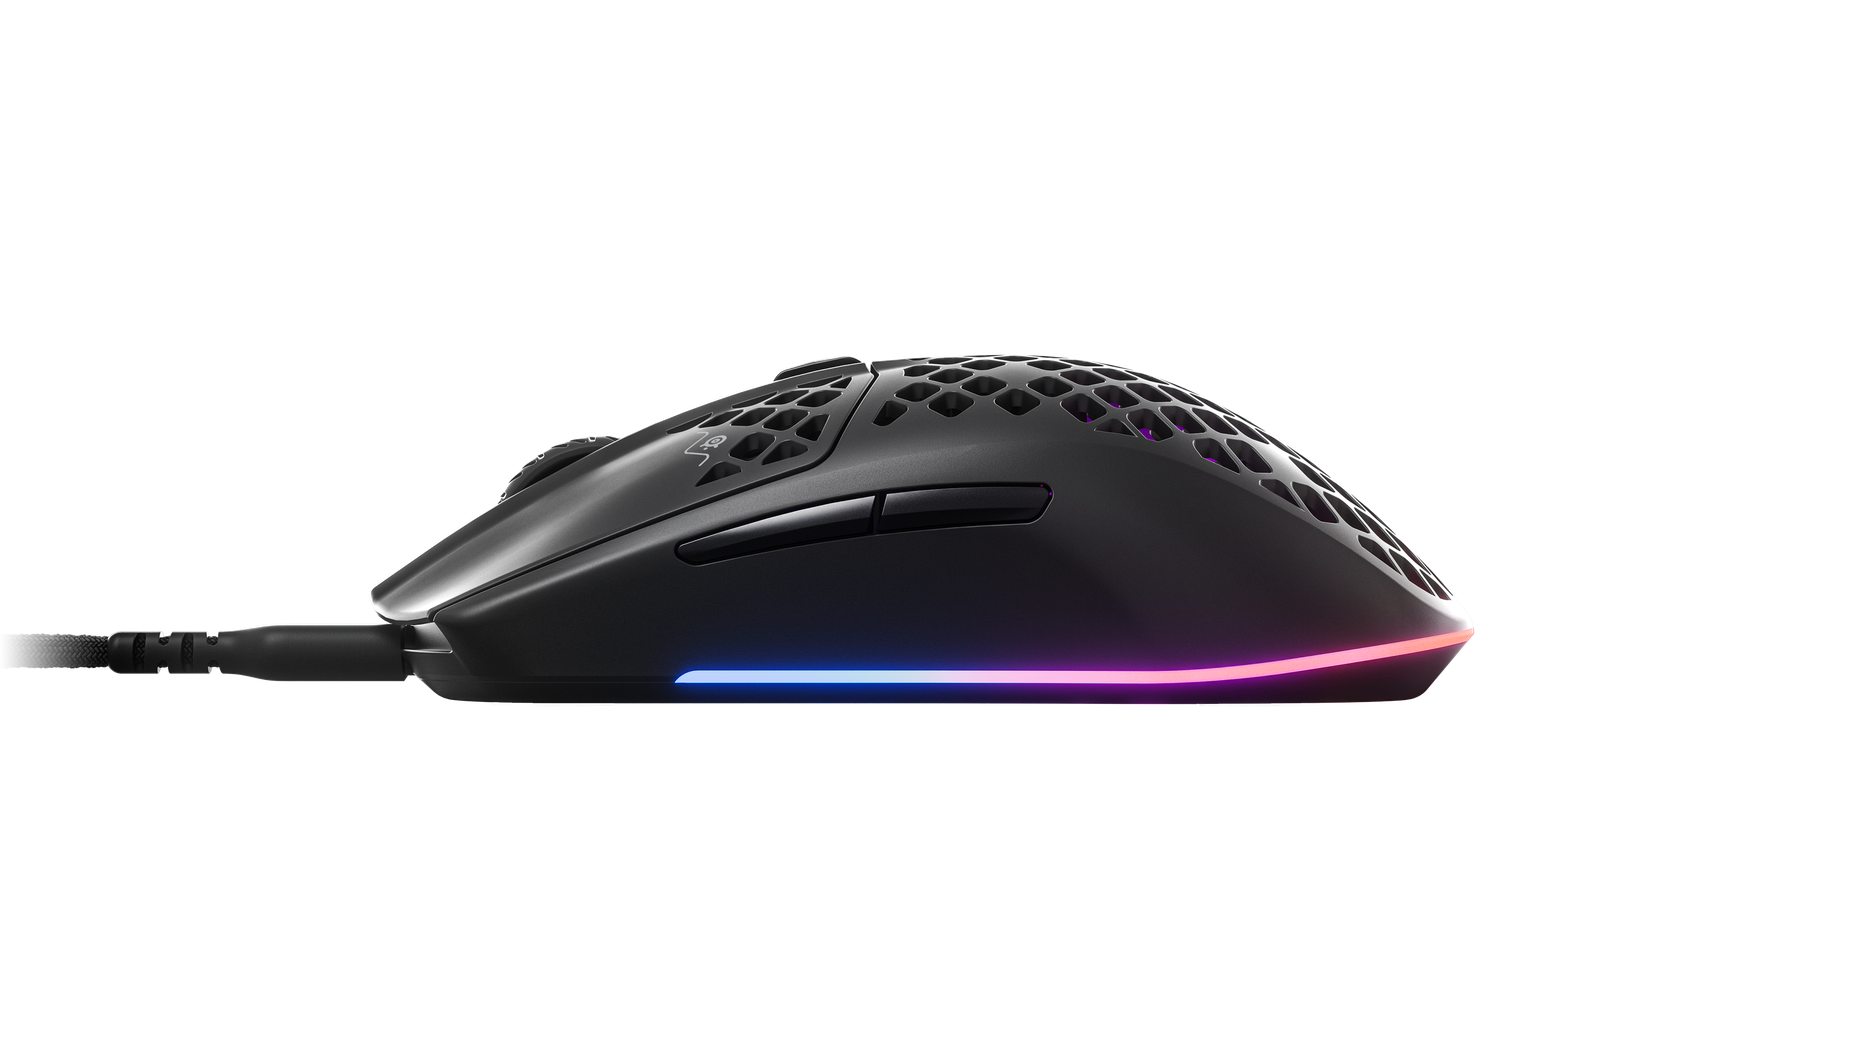 Aerox 3 mouse viewed from the side showing the height and the side buttons